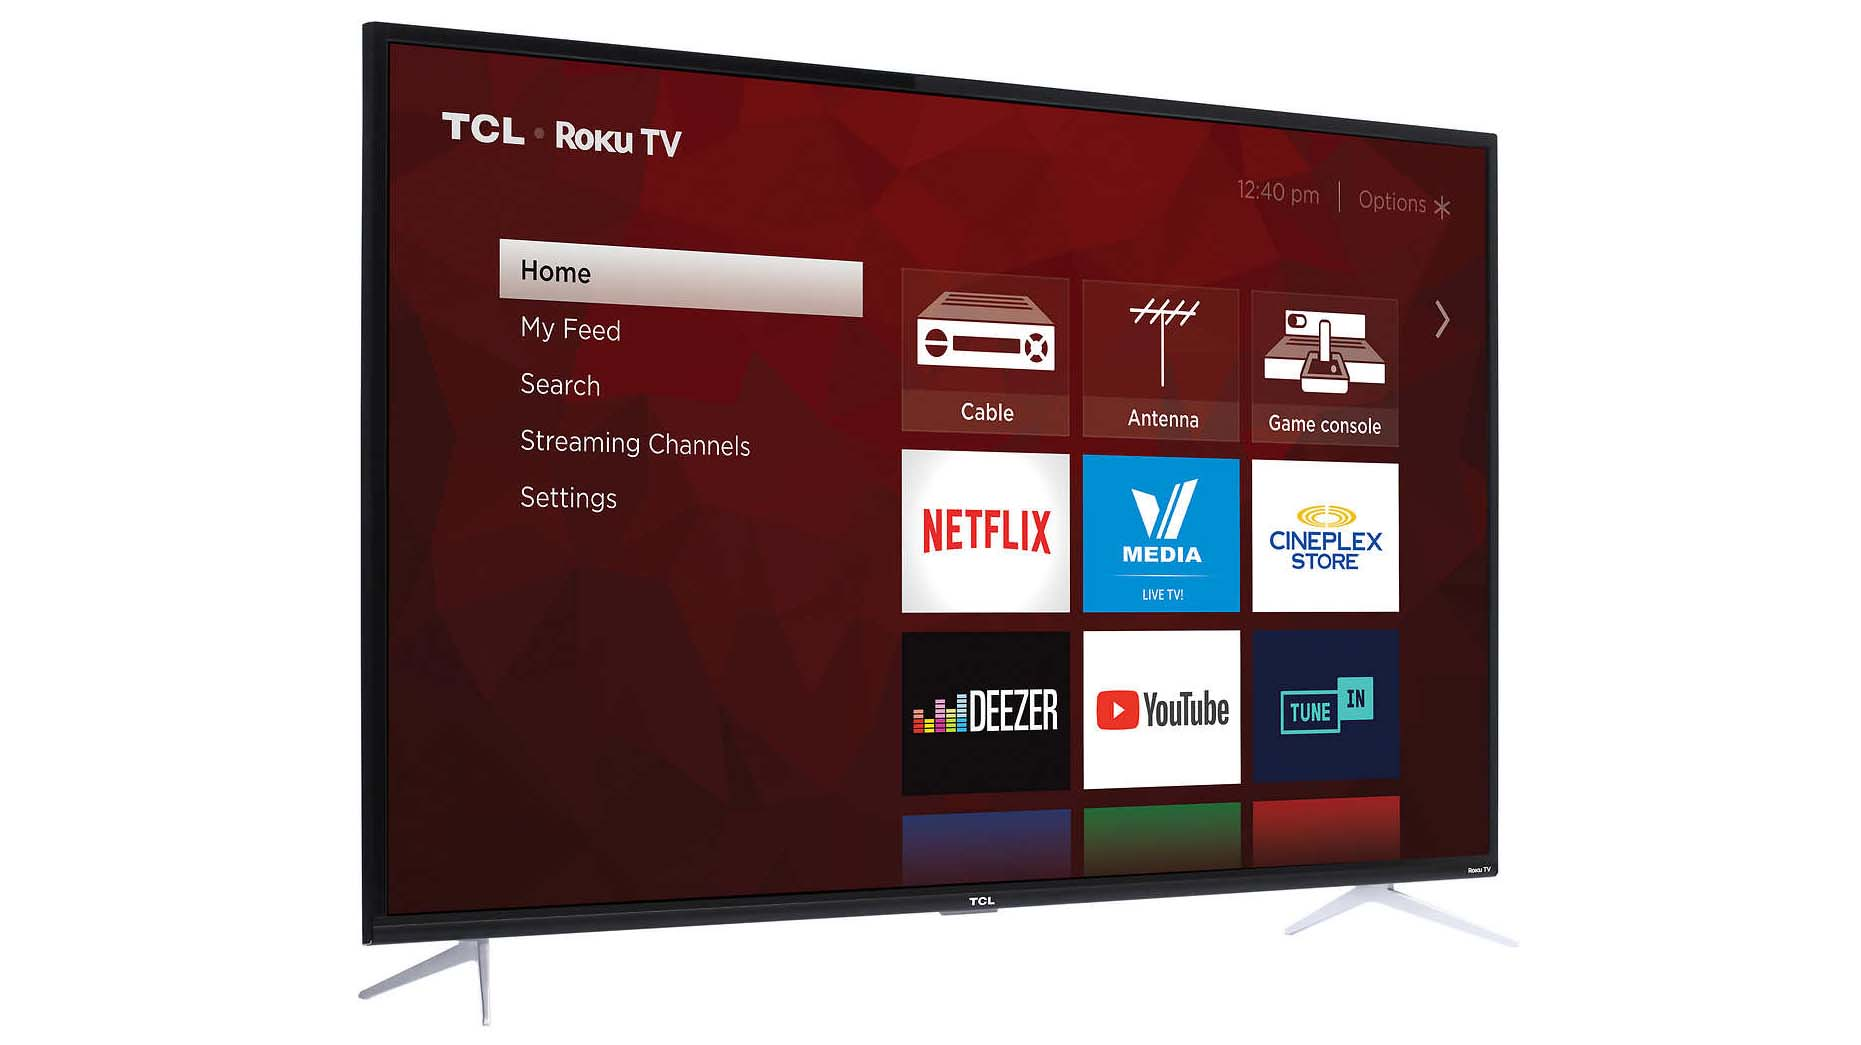 TCL 65-inch TV